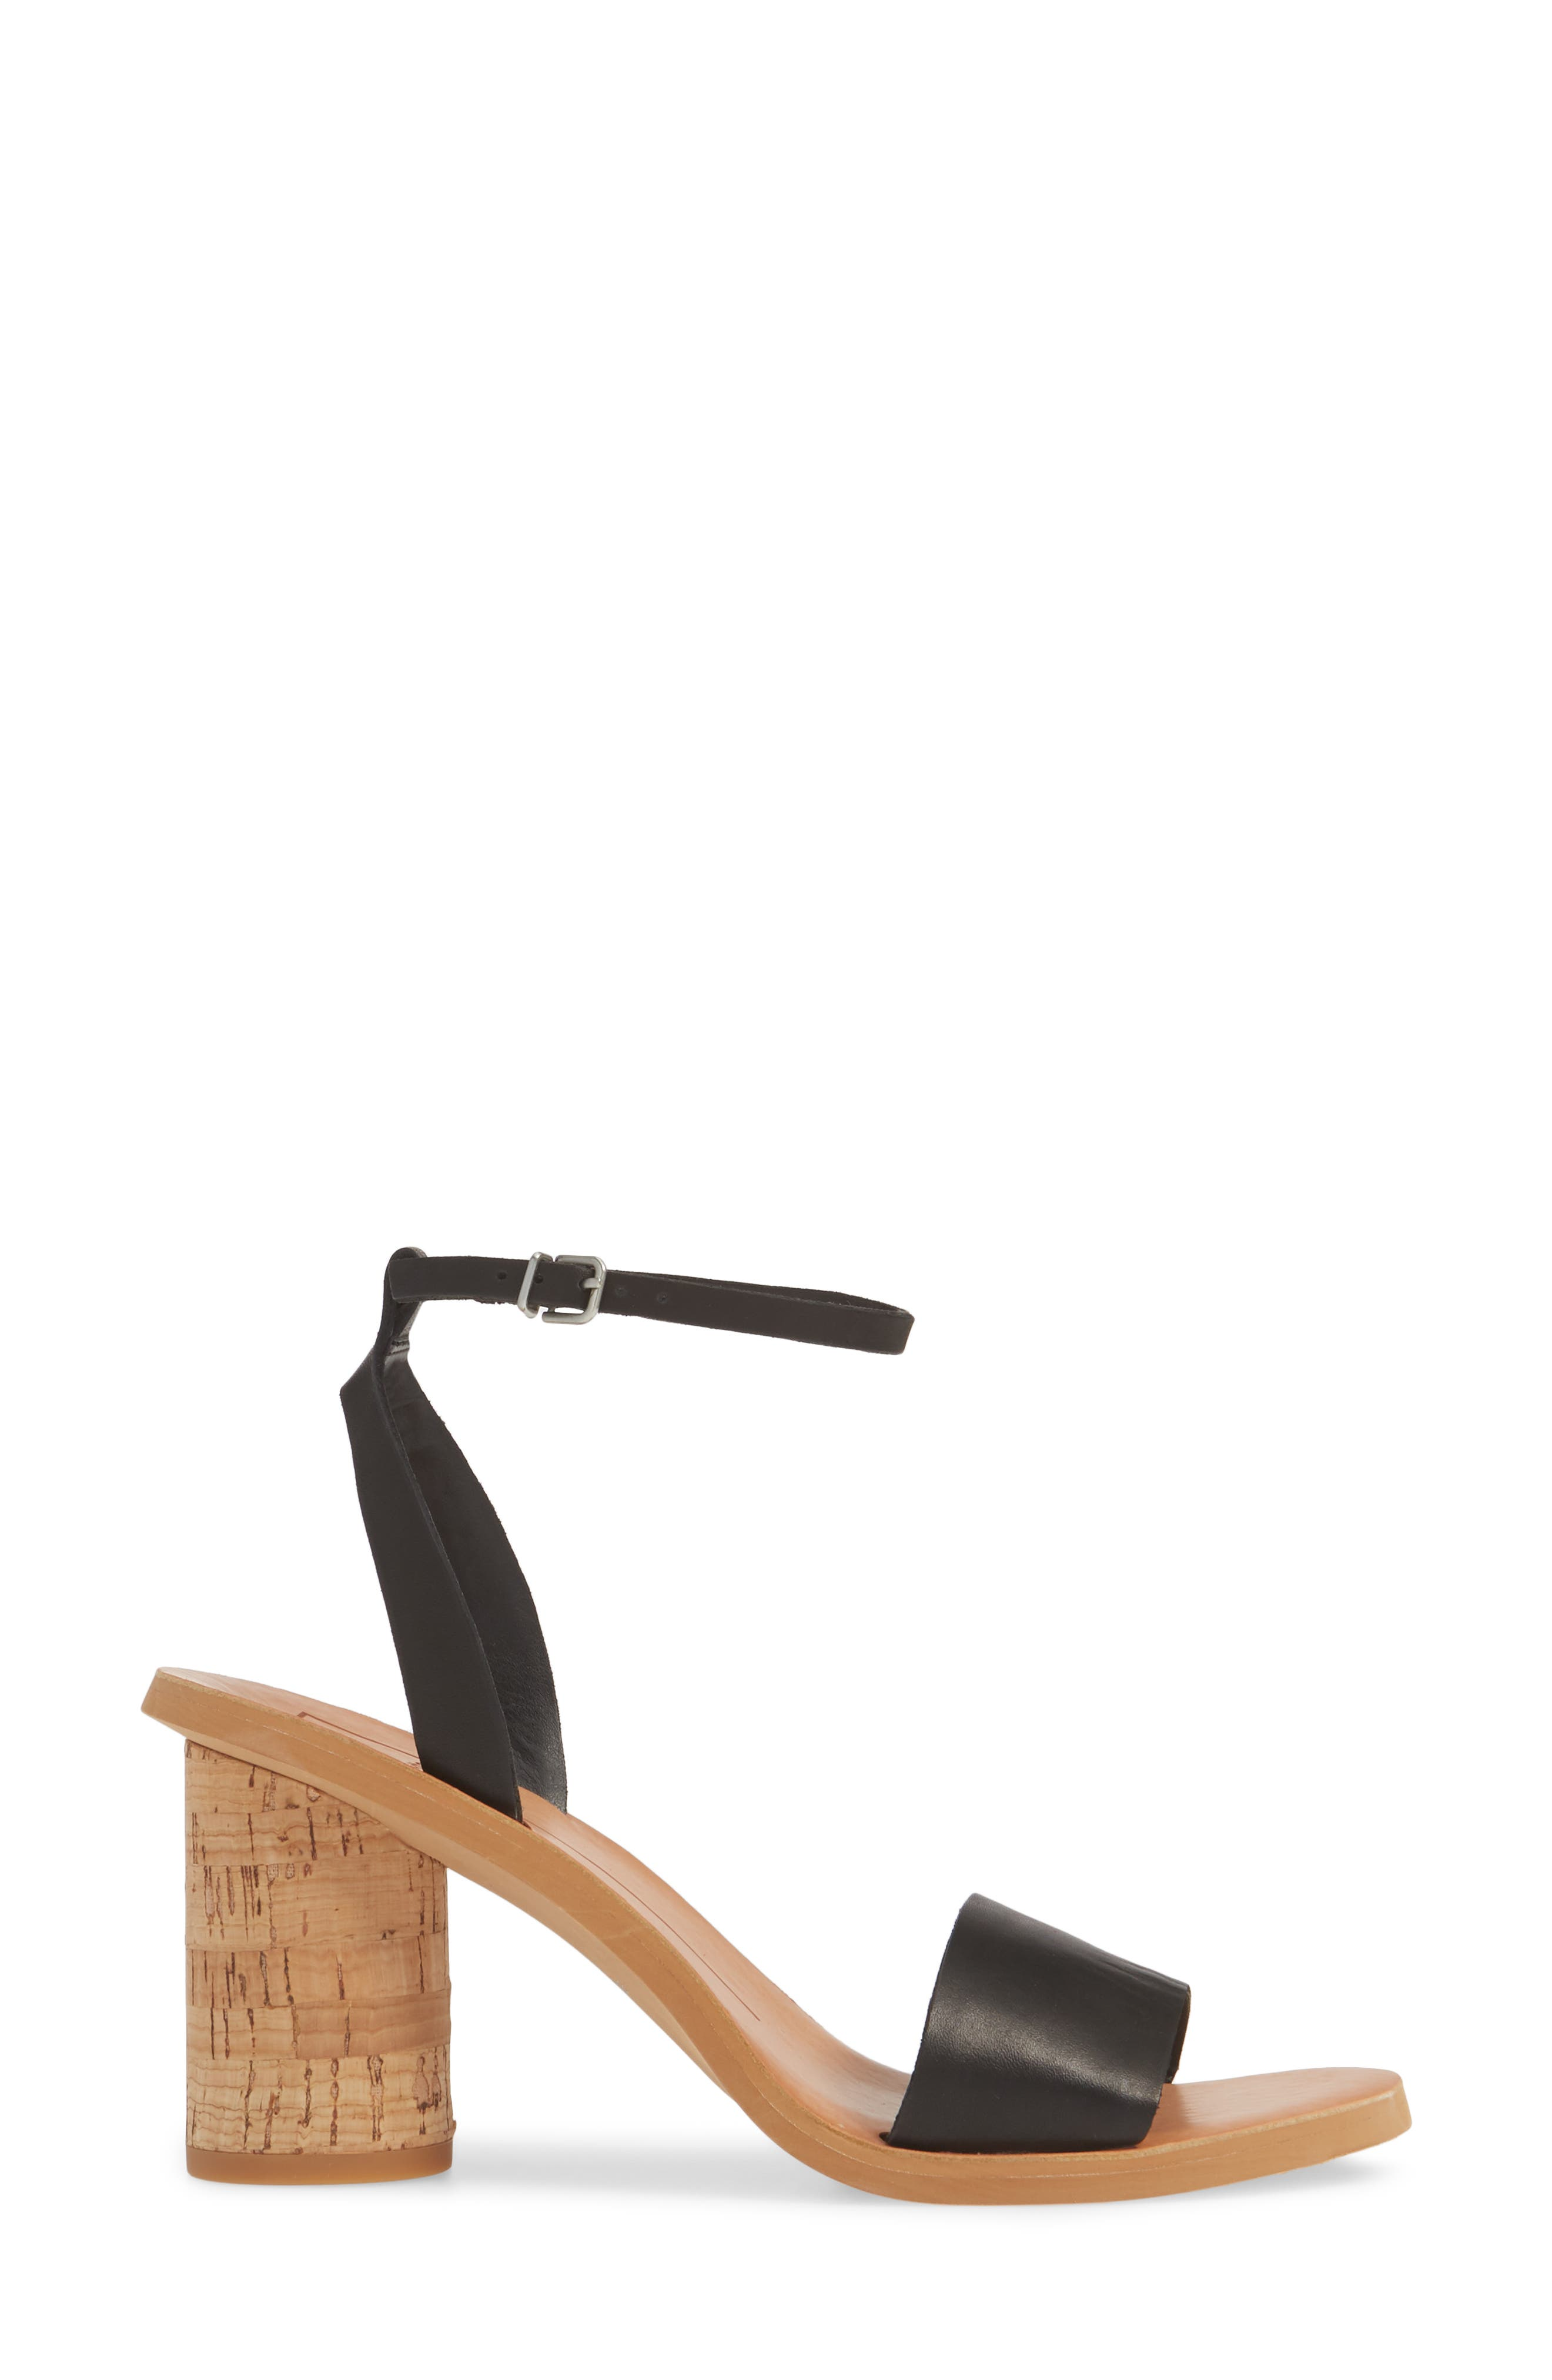 DOLCE VITA, Jali Column Heel Sandal, Alternate thumbnail 3, color, BLACK LEATHER